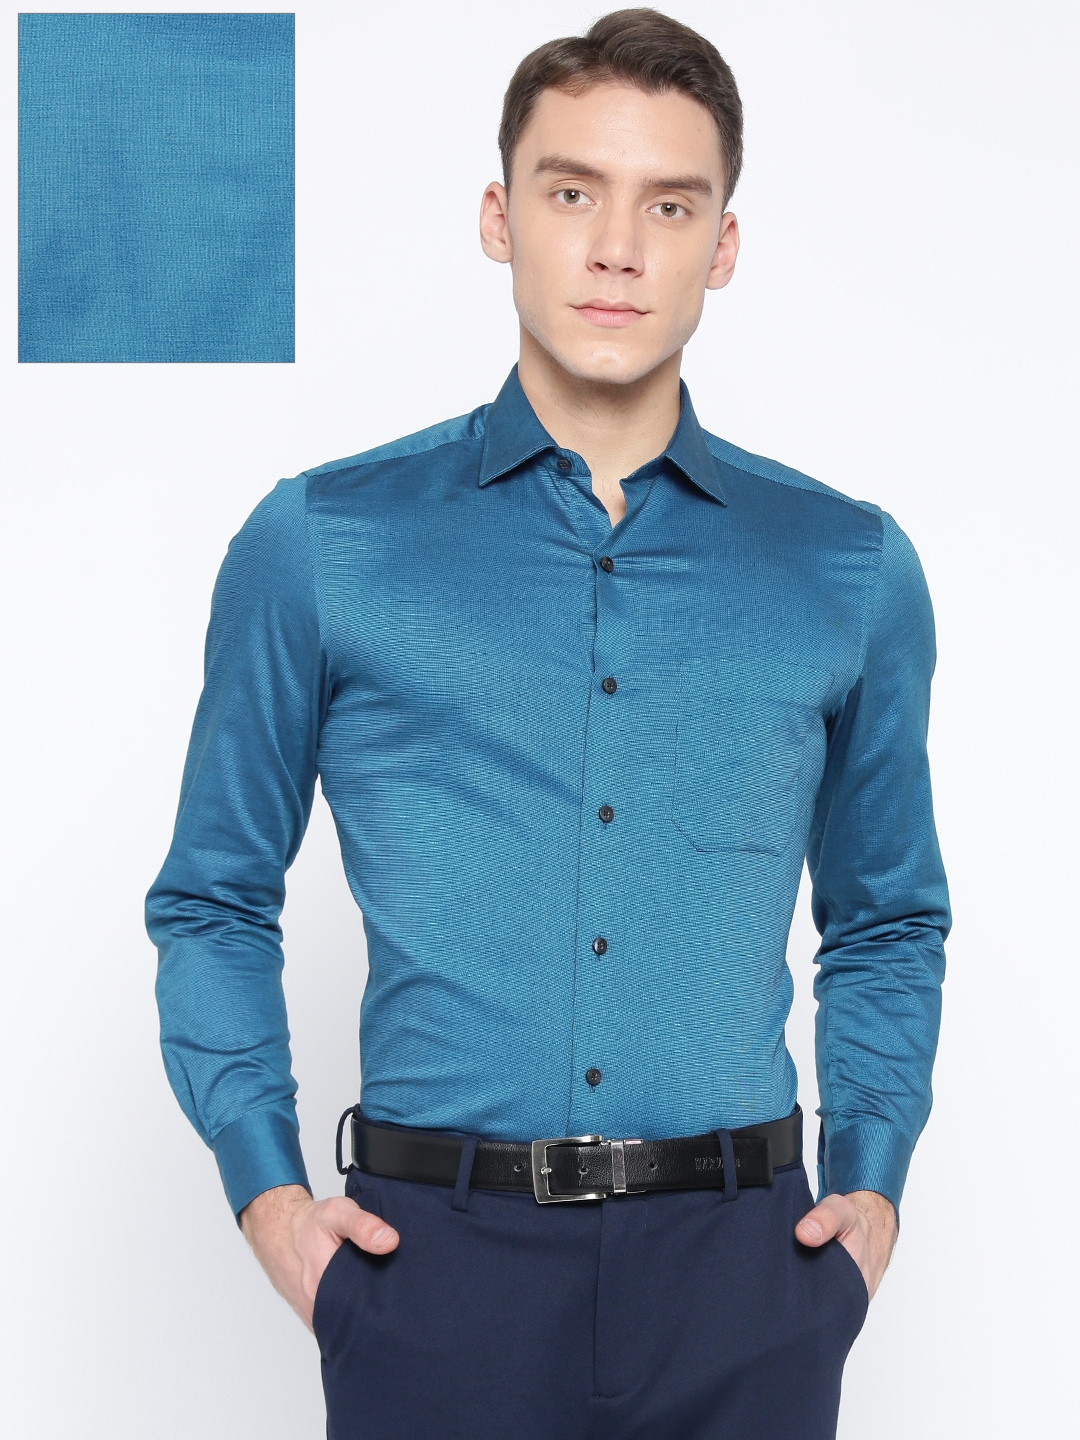 e8ed69d5d69 Buy Louis Philippe Men Teal Blue Classic Fit Solid Formal Shirt ...